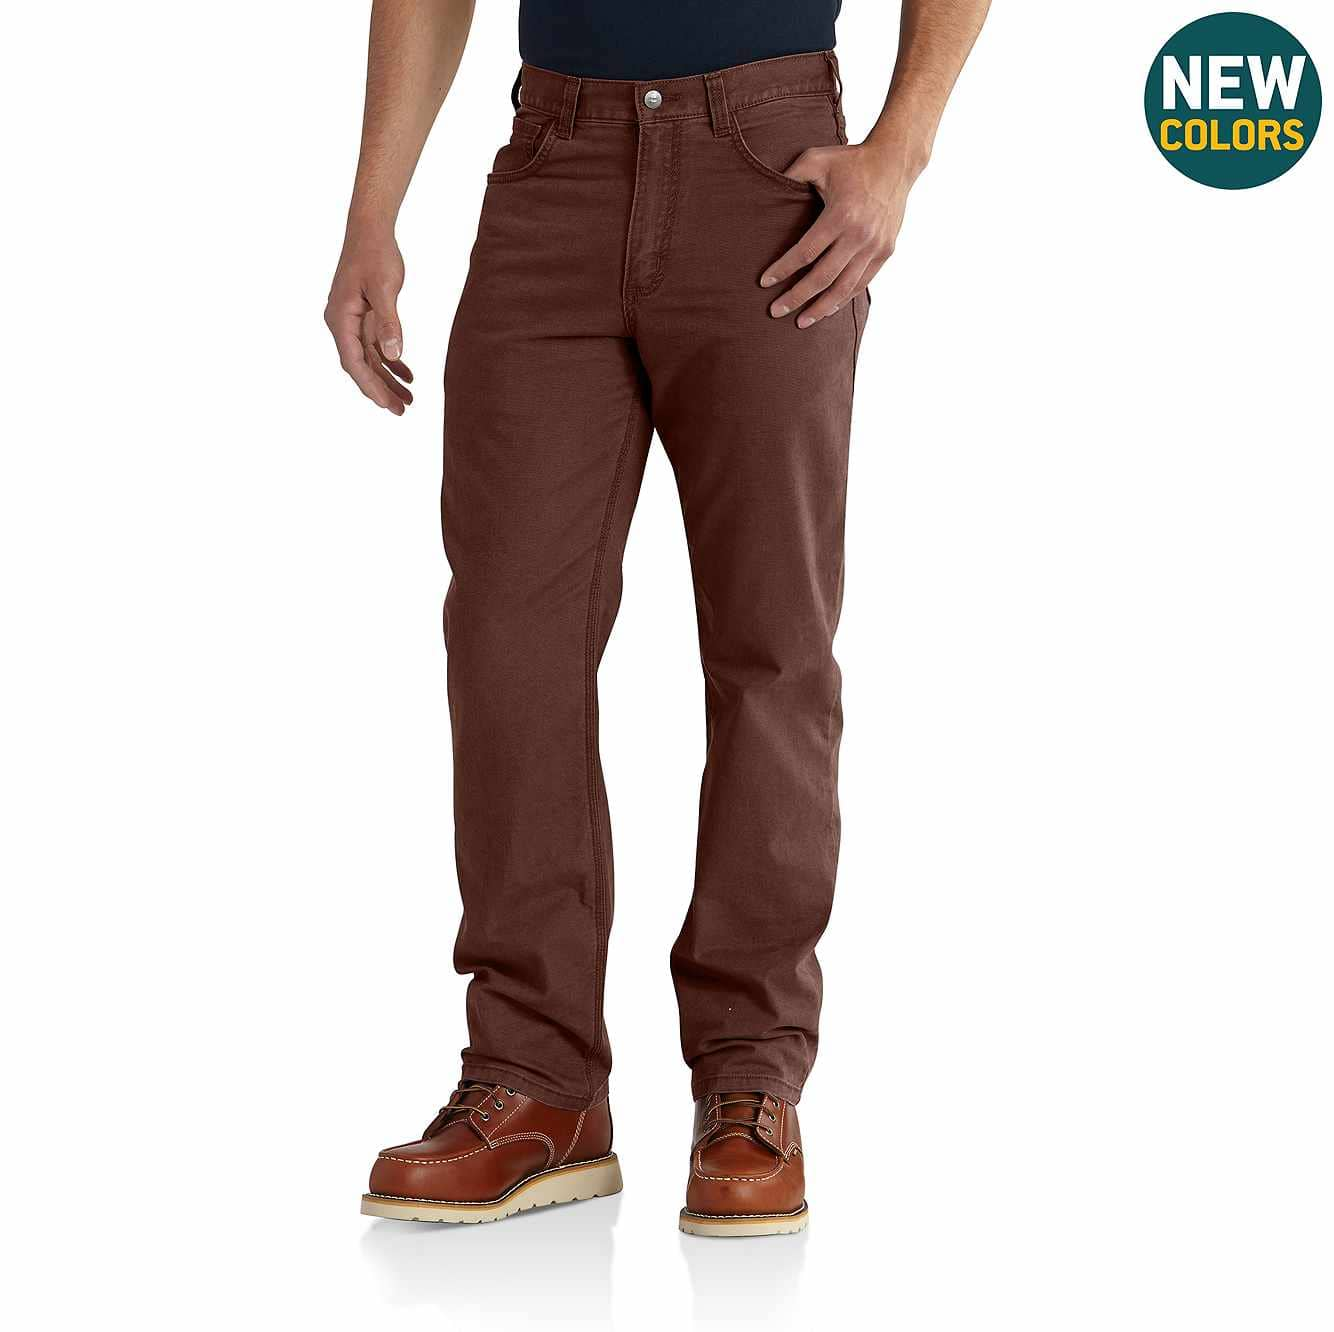 Picture of Rugged Flex® Rigby 5-Pocket Work Pant in Mineral Red